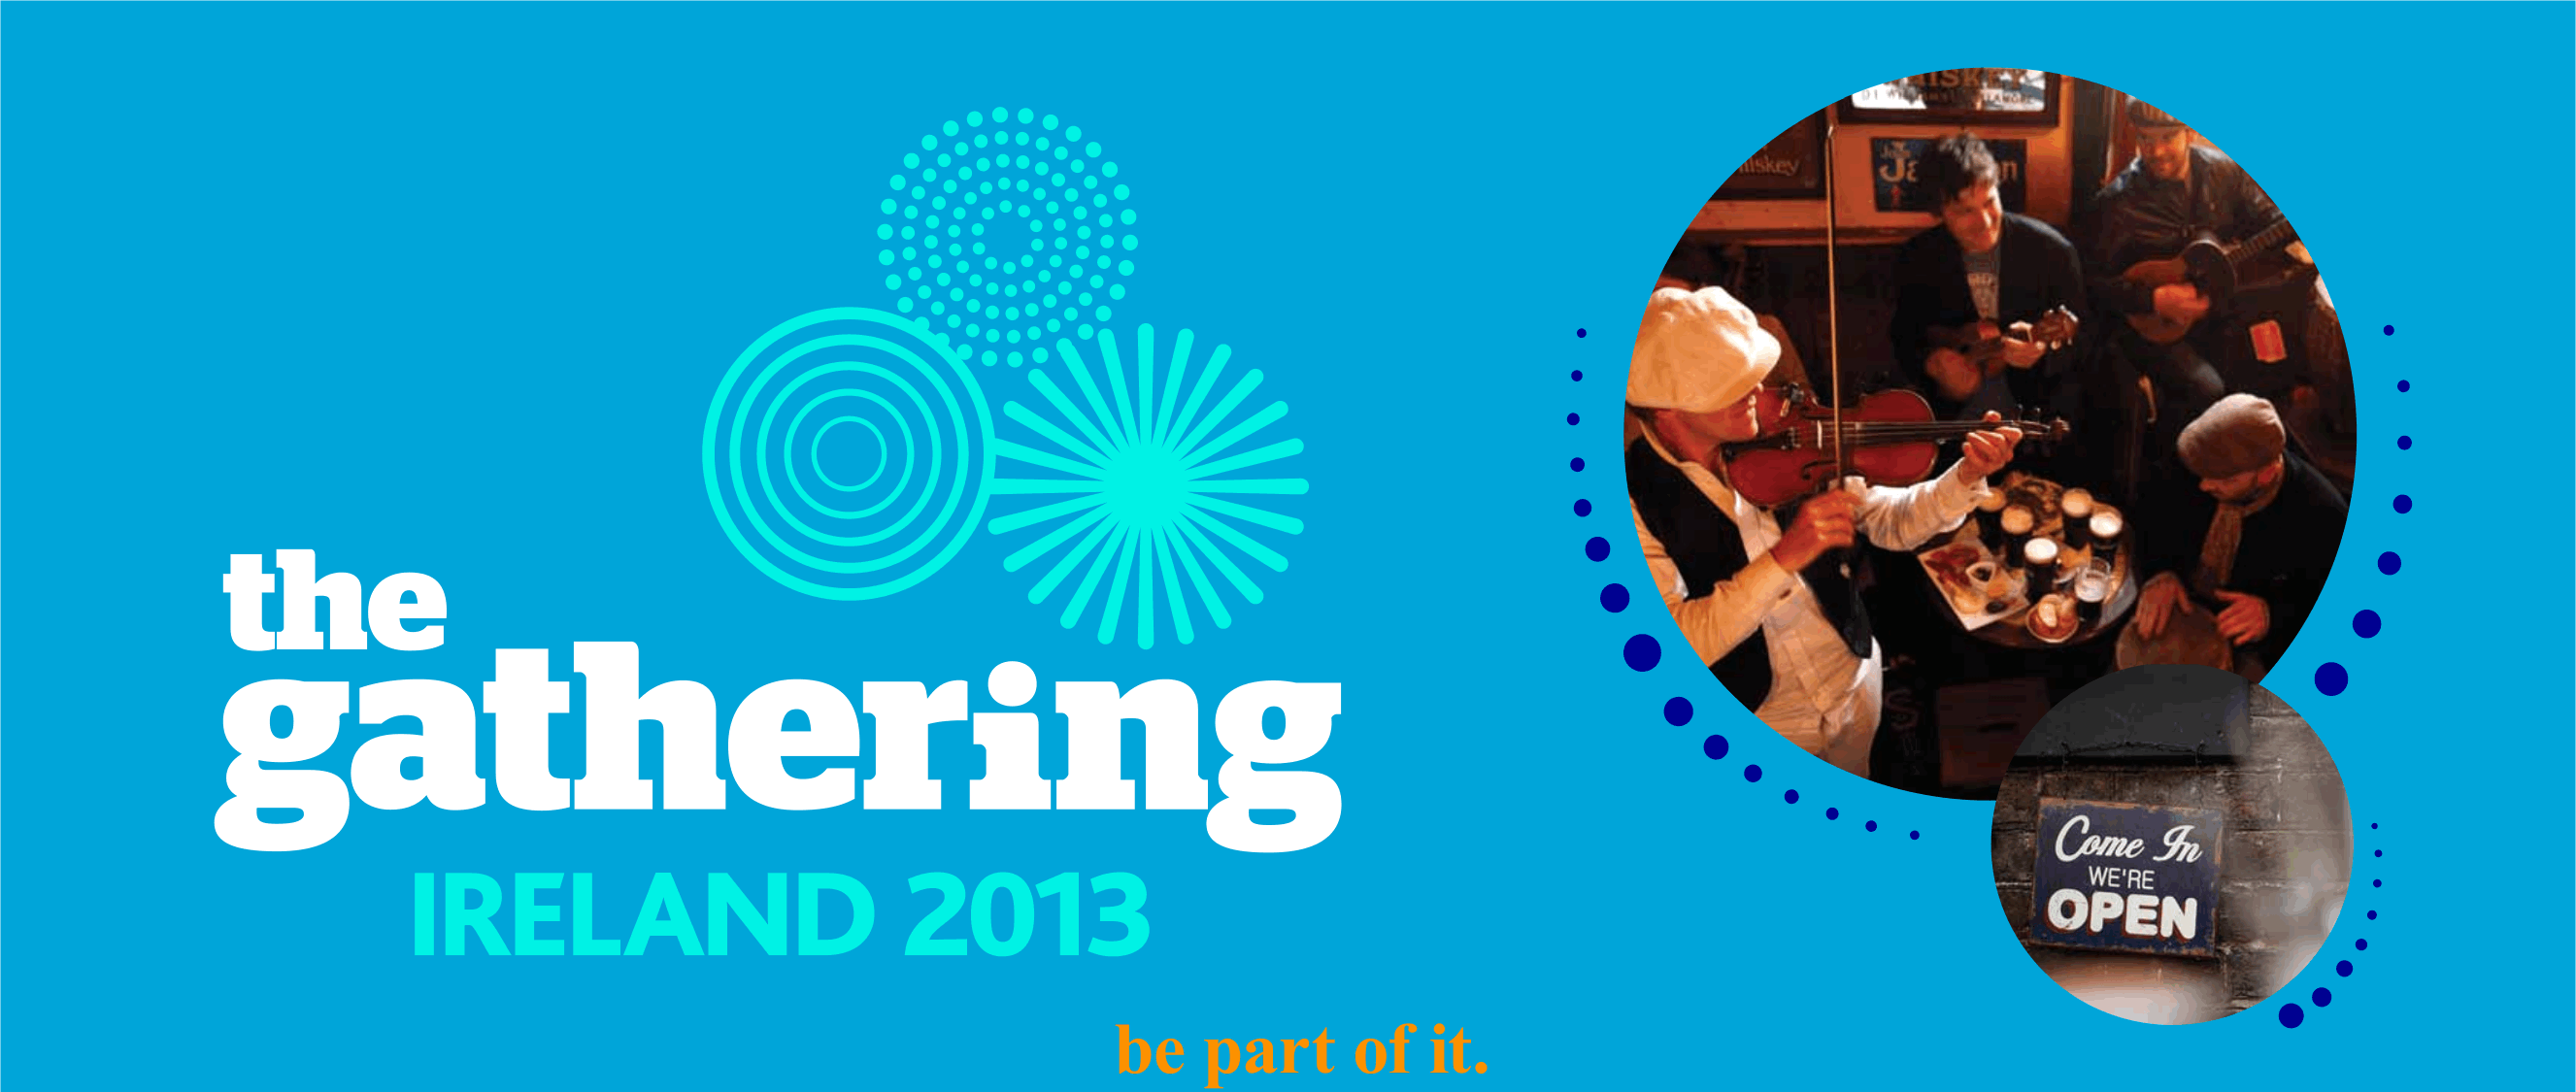 The Gathering Ireland 2013 - be a part of it.